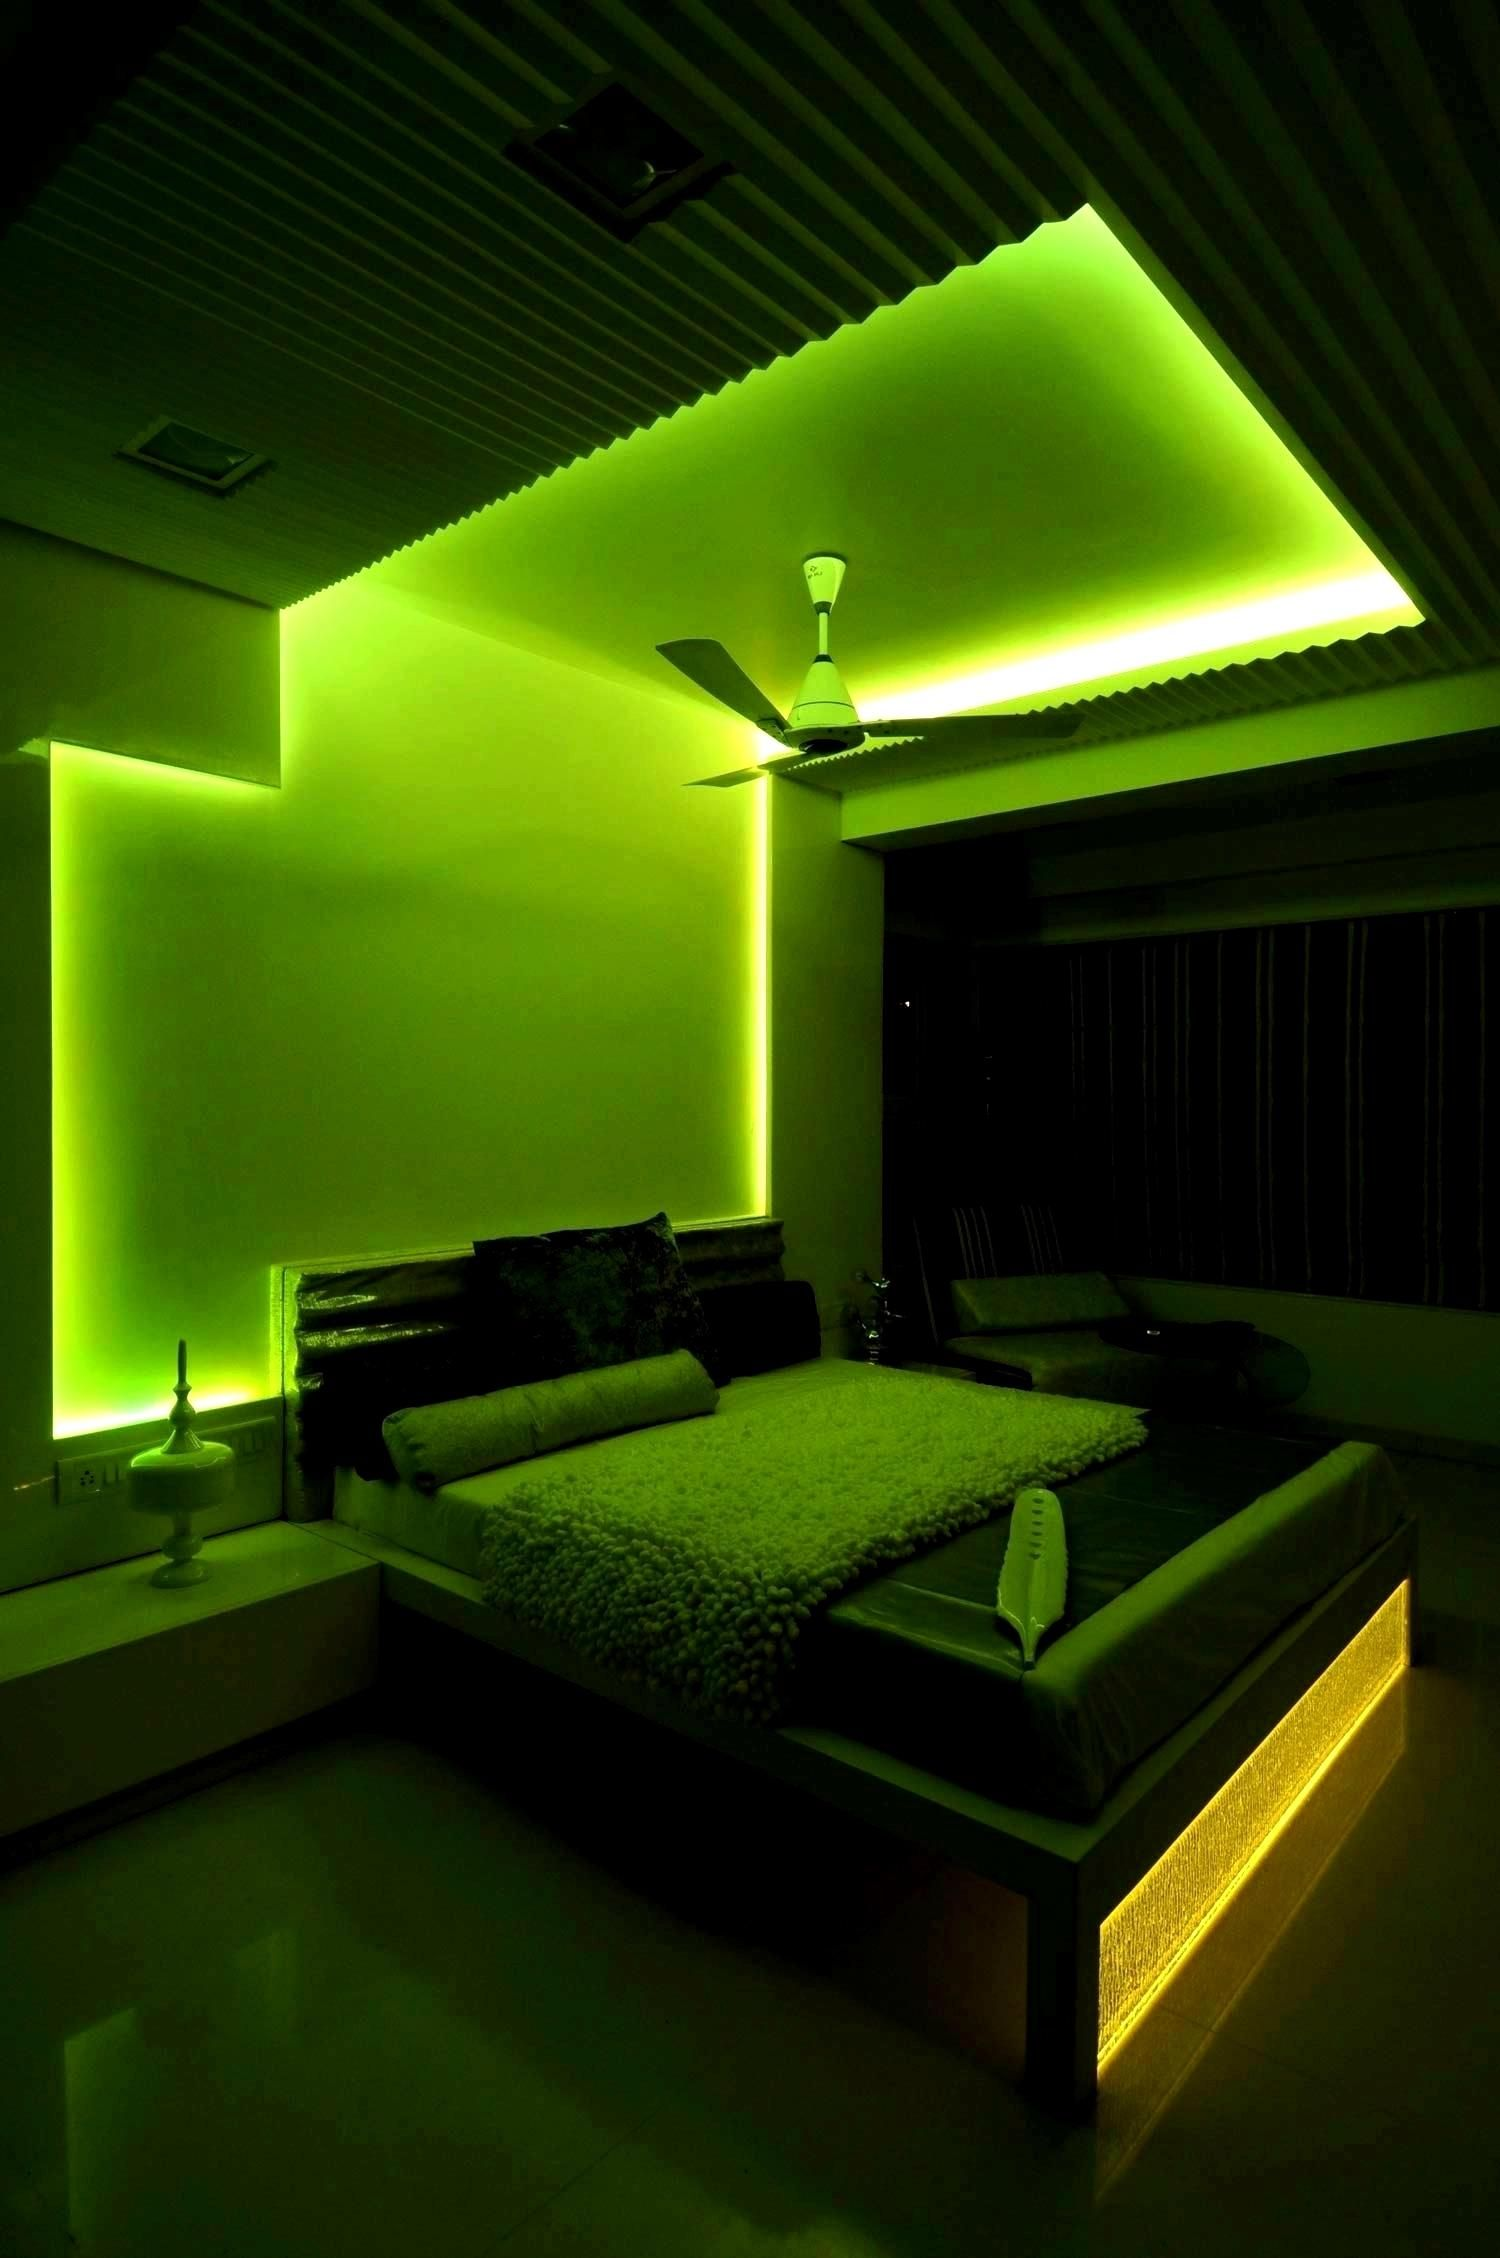 Delightful Splendid Black Room Designs Neon Bedroom Ideas Neon Green Zebra Bright Walls Fcdabecfaadacc Ac Neon Bedroom Neon Lights Bedroom Led Lighting Bedroom